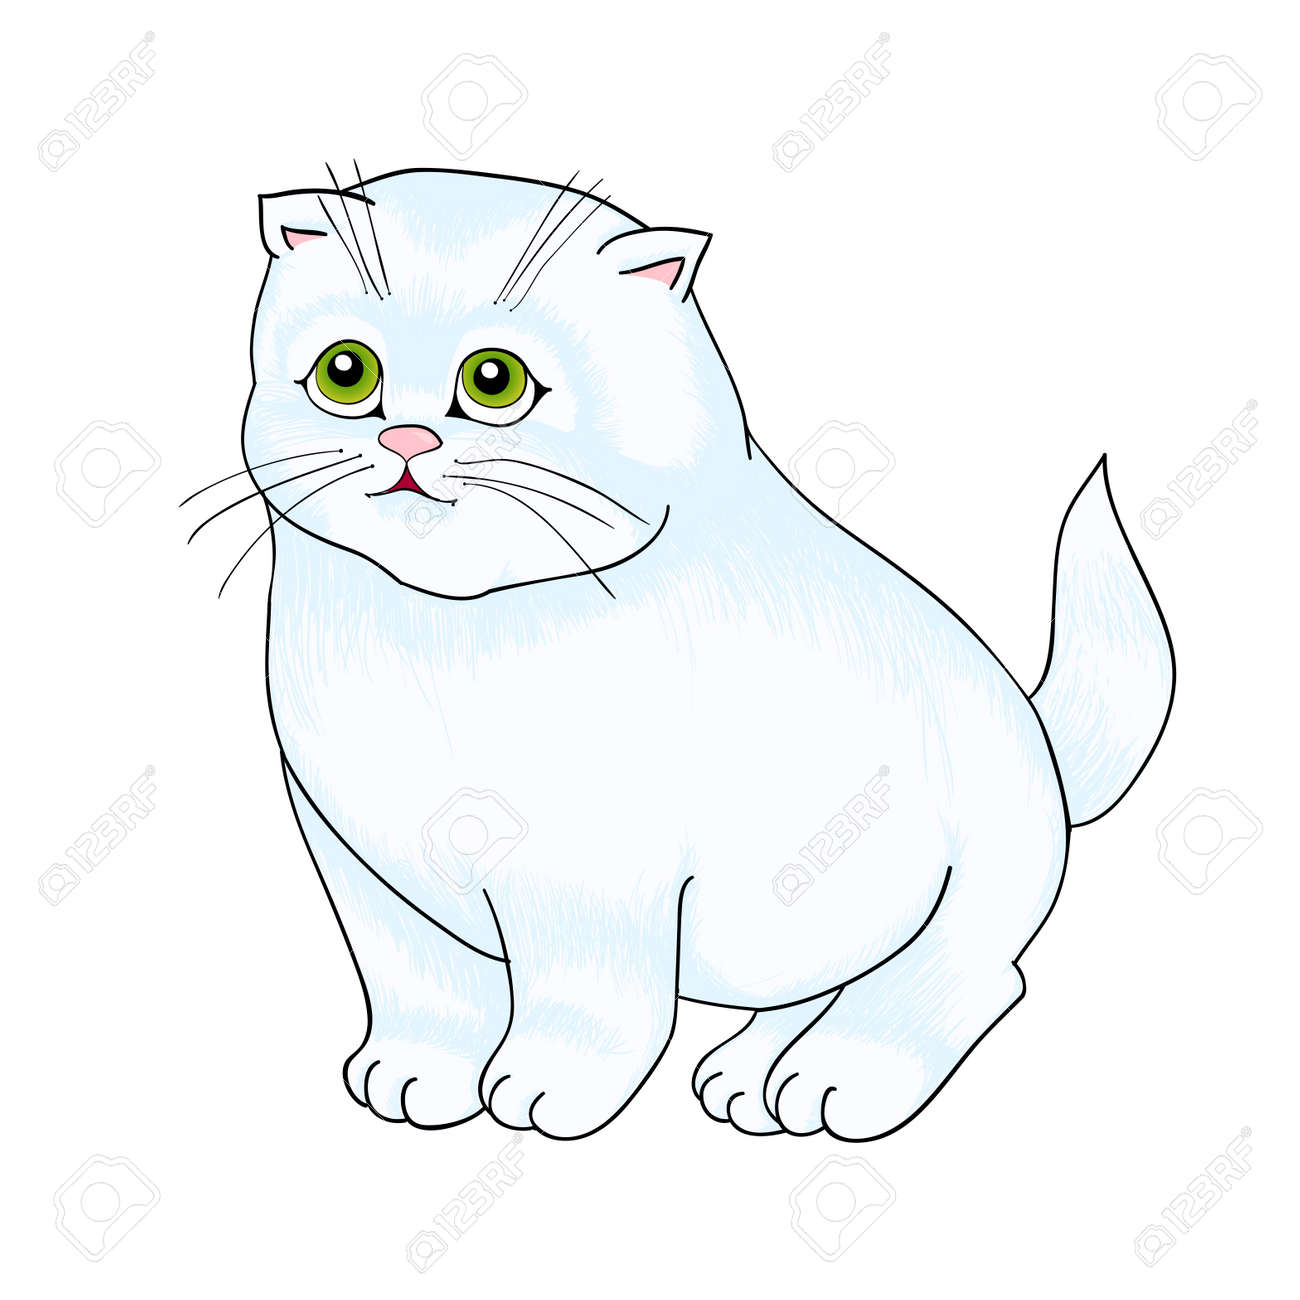 white cat sitting, with isolation on a white background Stock Vector - 15526752